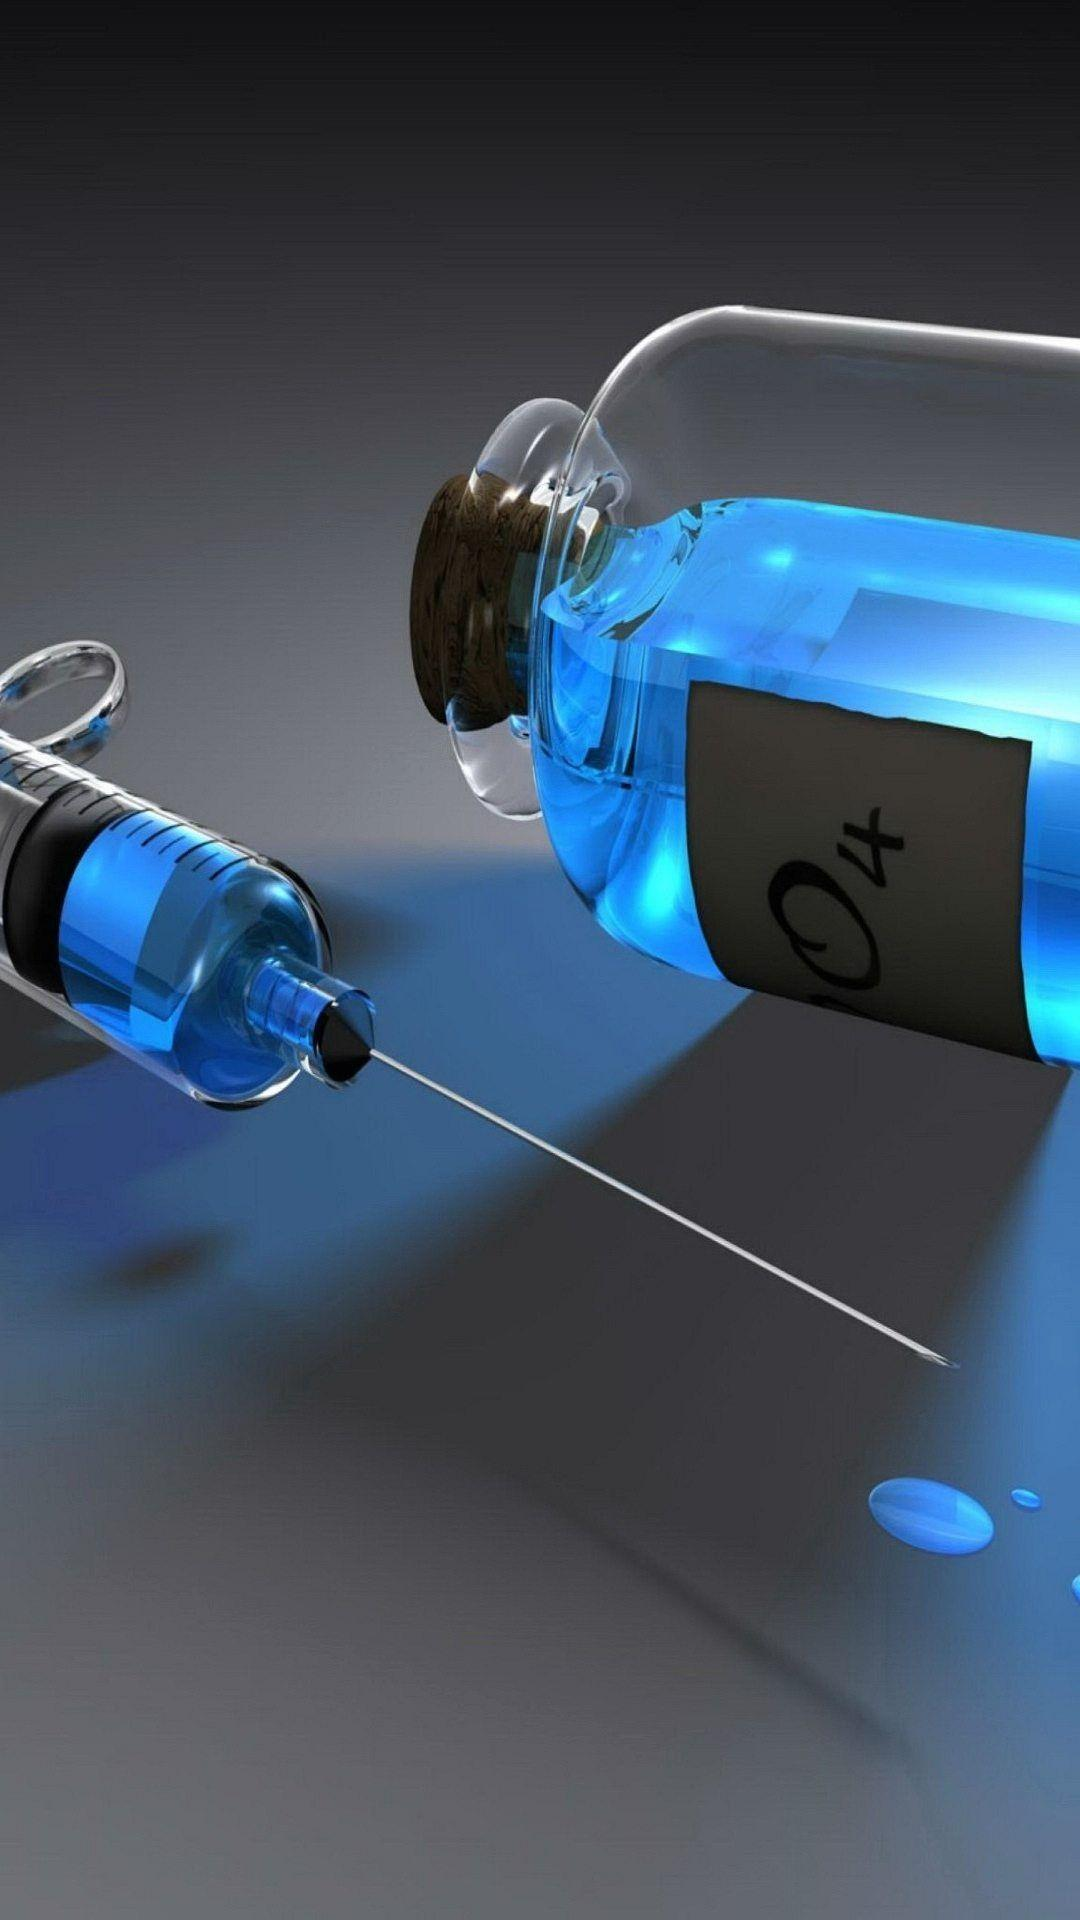 Wallpaper Full Hd 1080 X 1920 Smartphone Syringe And Medicine Blue ...